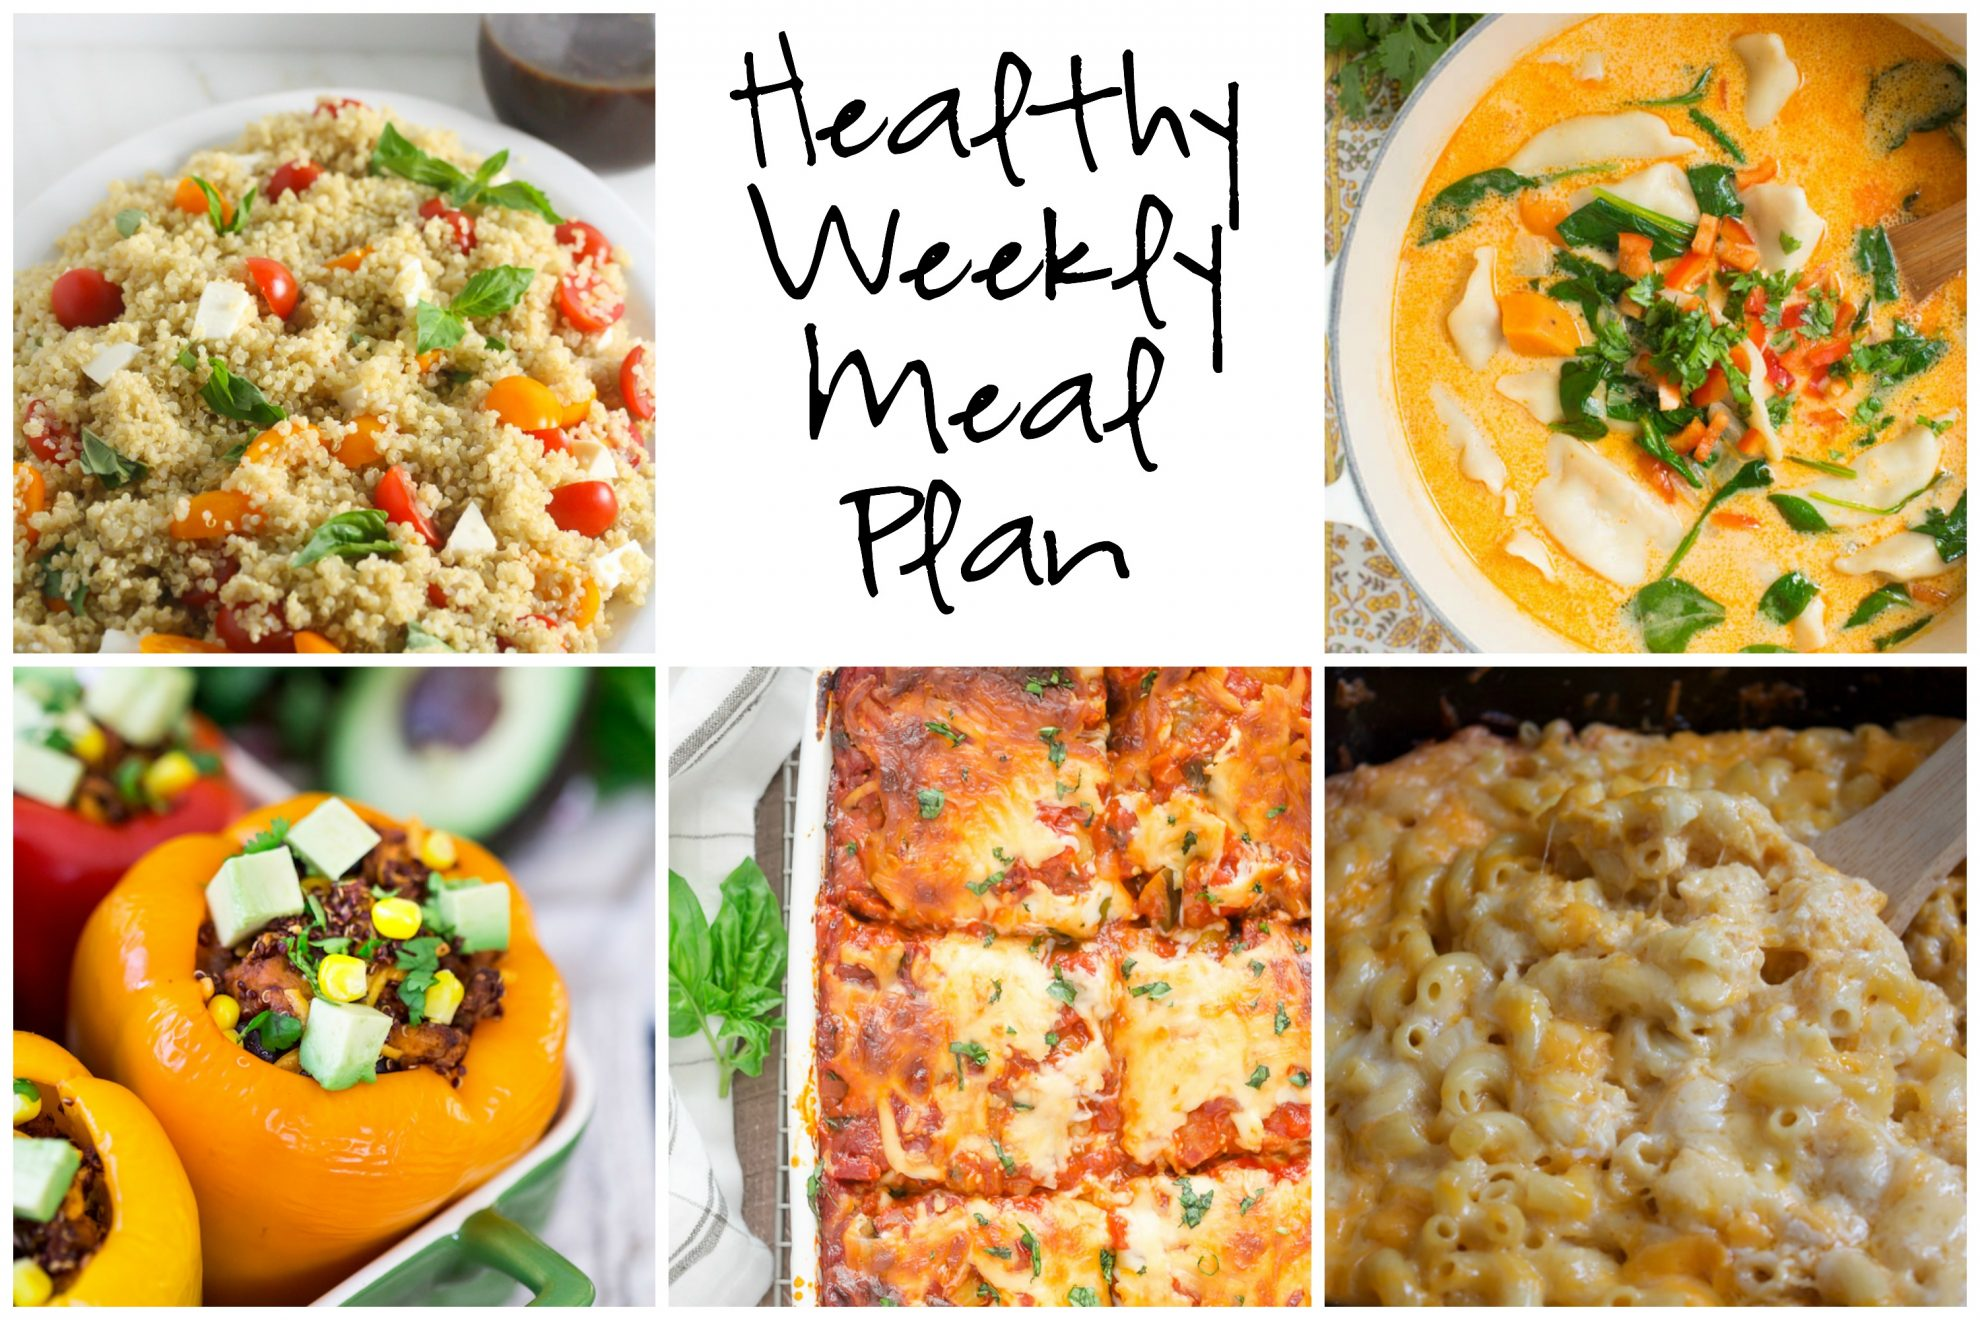 Healthy Weekly Meal Plan 2.11.17 featuring a Thai Coconut Pot Sticker Soup, Slow Cooker Mac and Cheese, Mexican Chicken and Quinoa Stuffed Peppers and more!